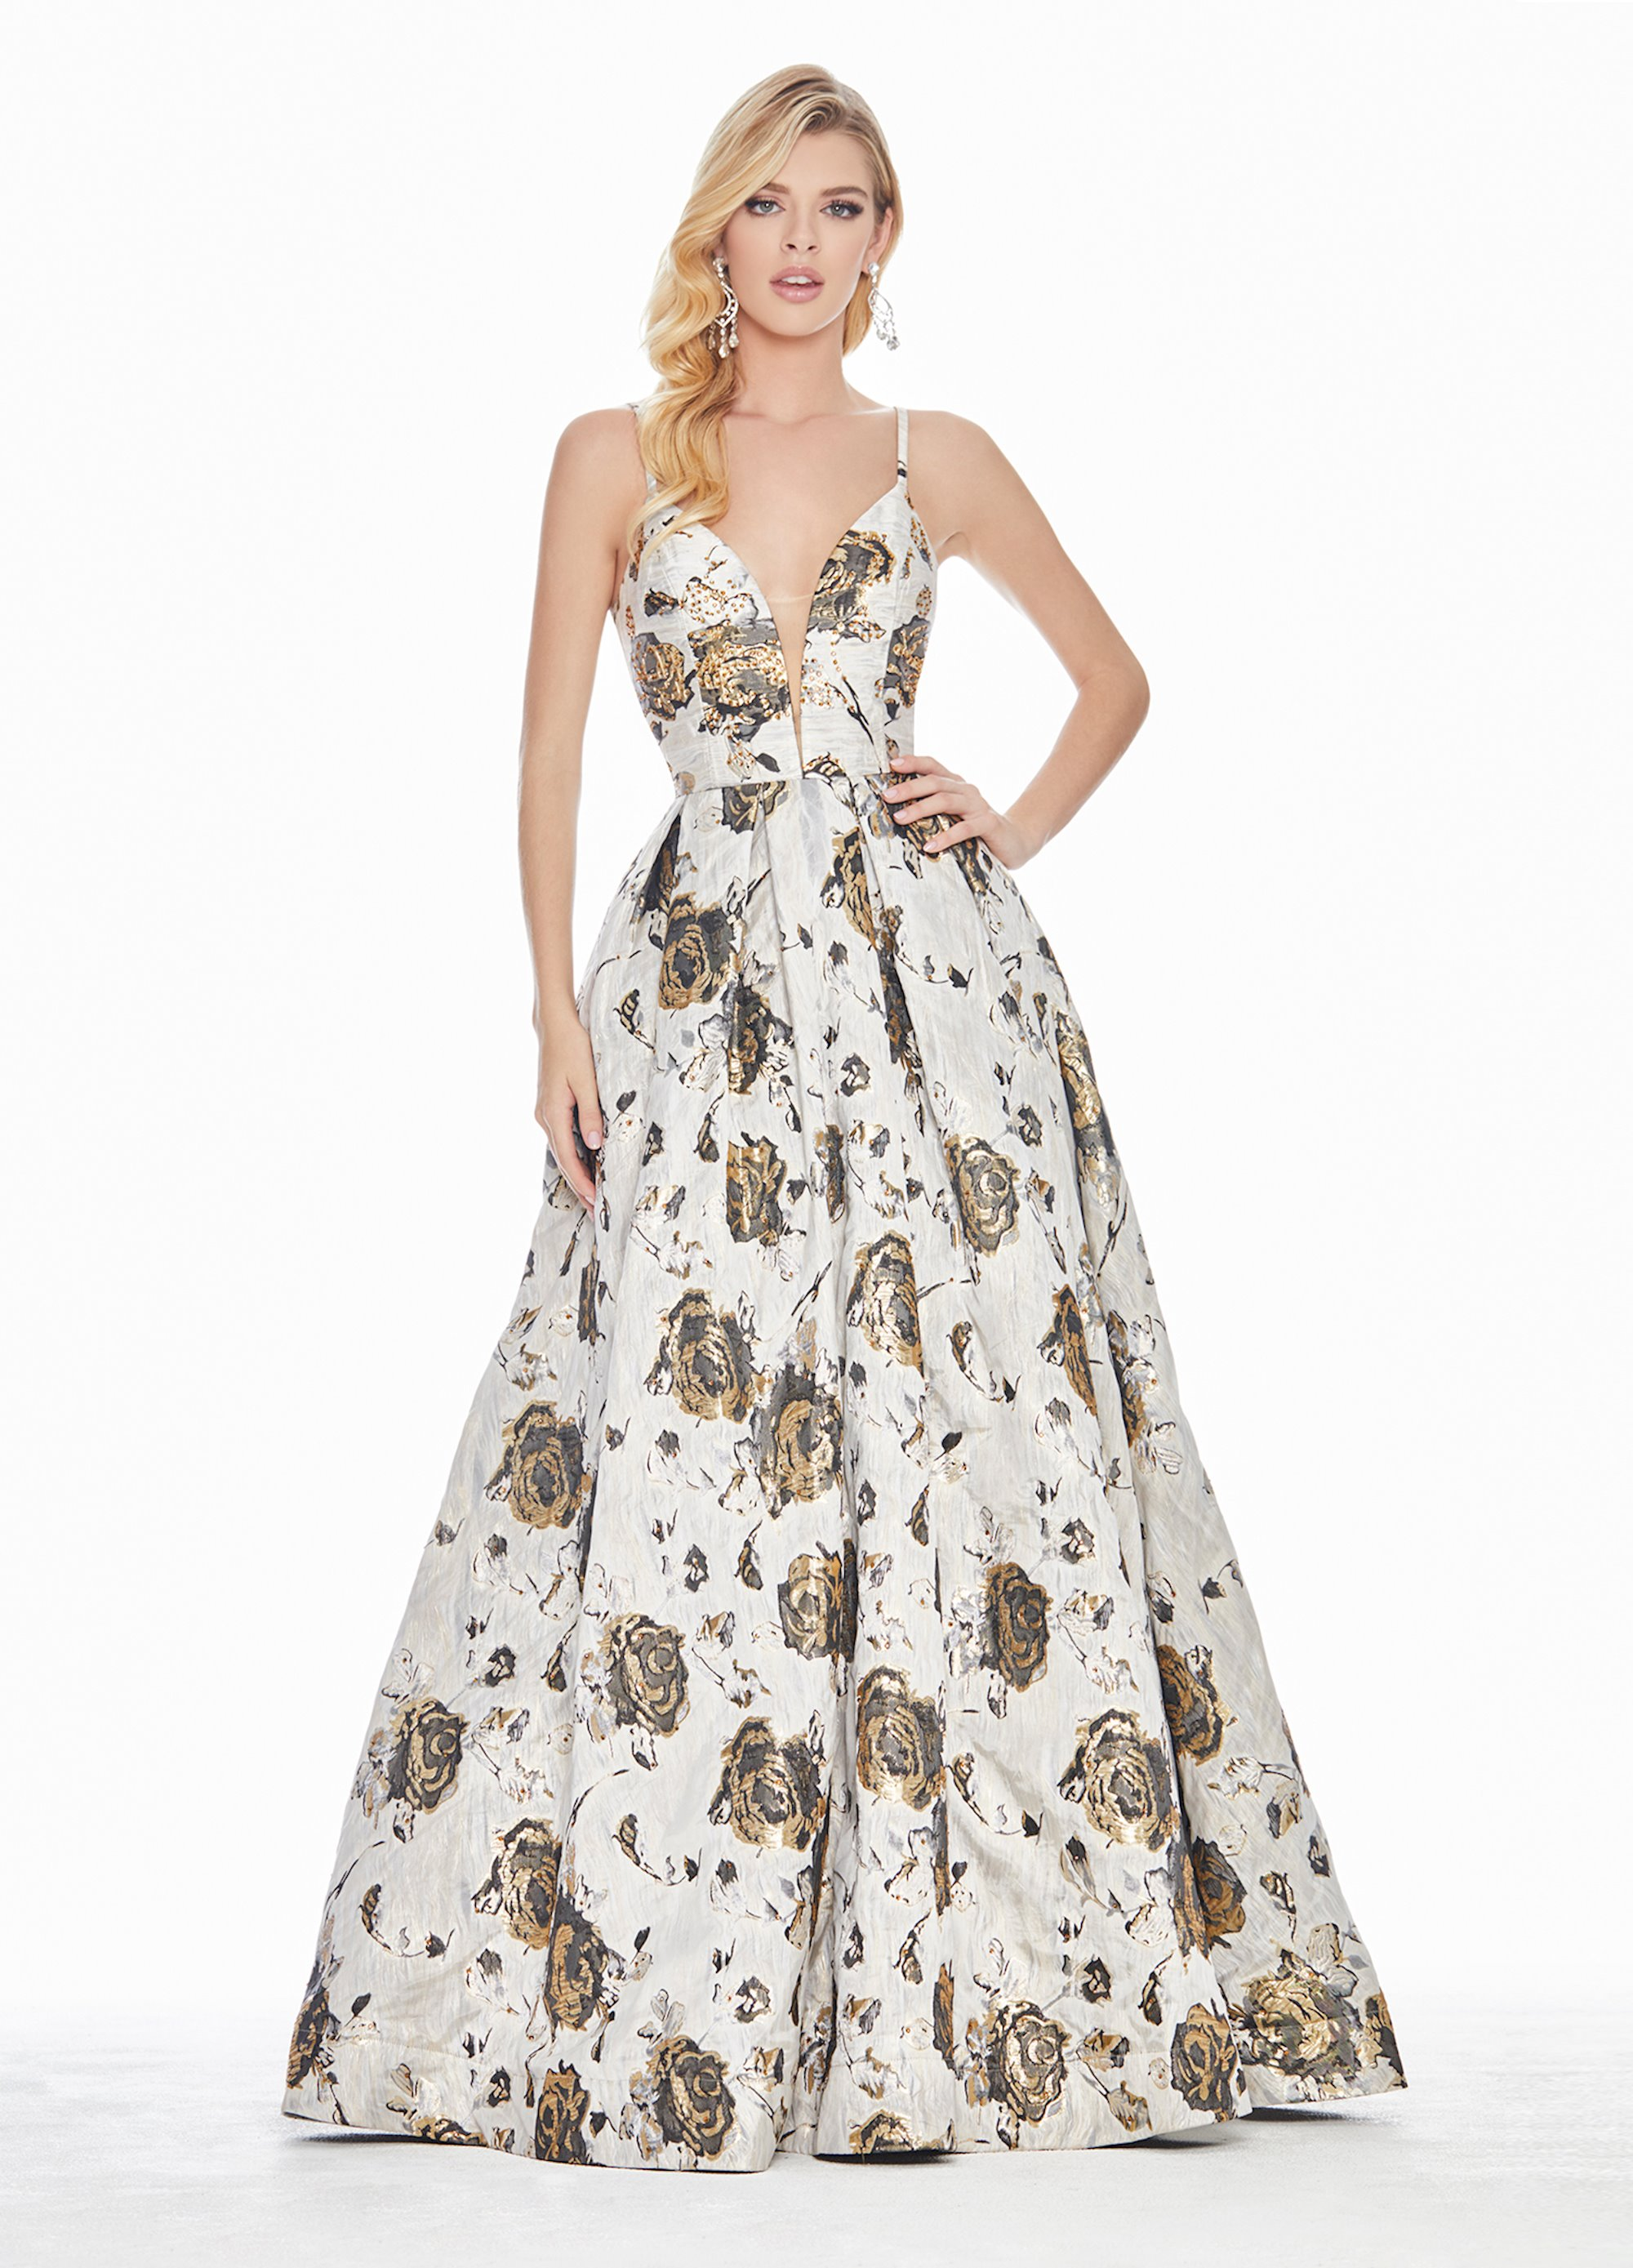 e7b8052132de Ashley Lauren - Floral Brocade Ball Gown | ASHLEYlauren